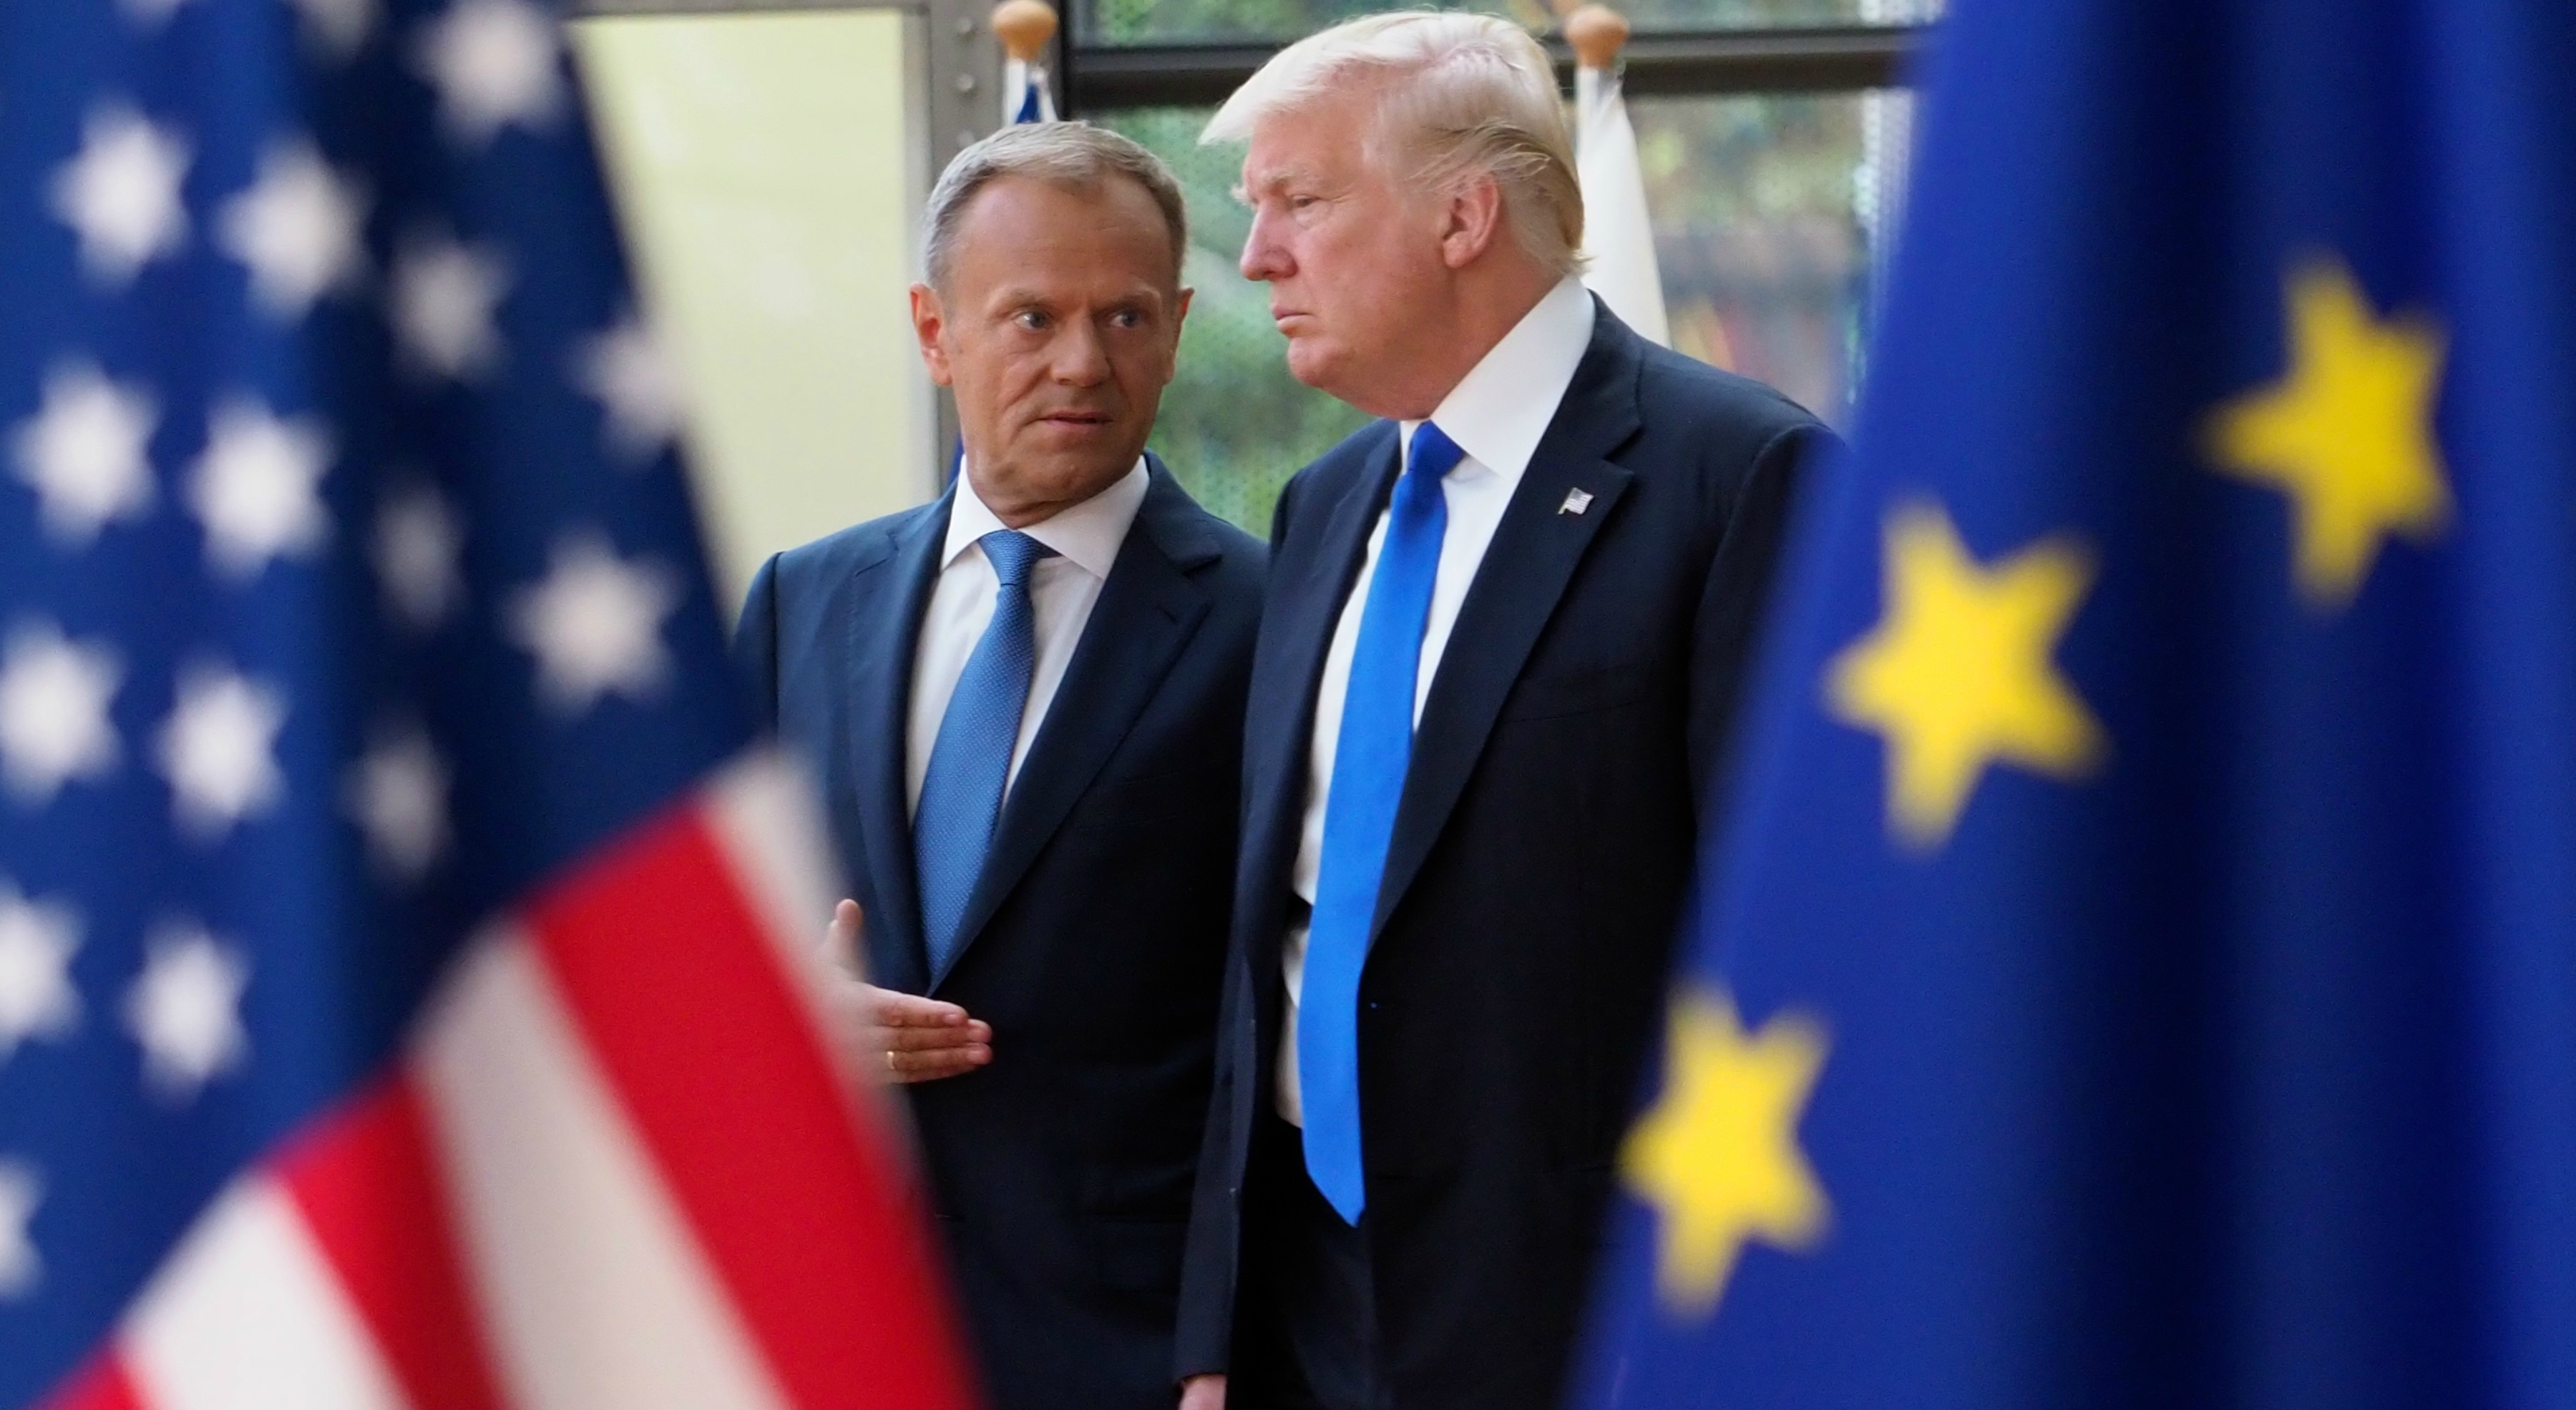 Donald Trump believes EU27 more united after Brexit vote, Donald Tusk says